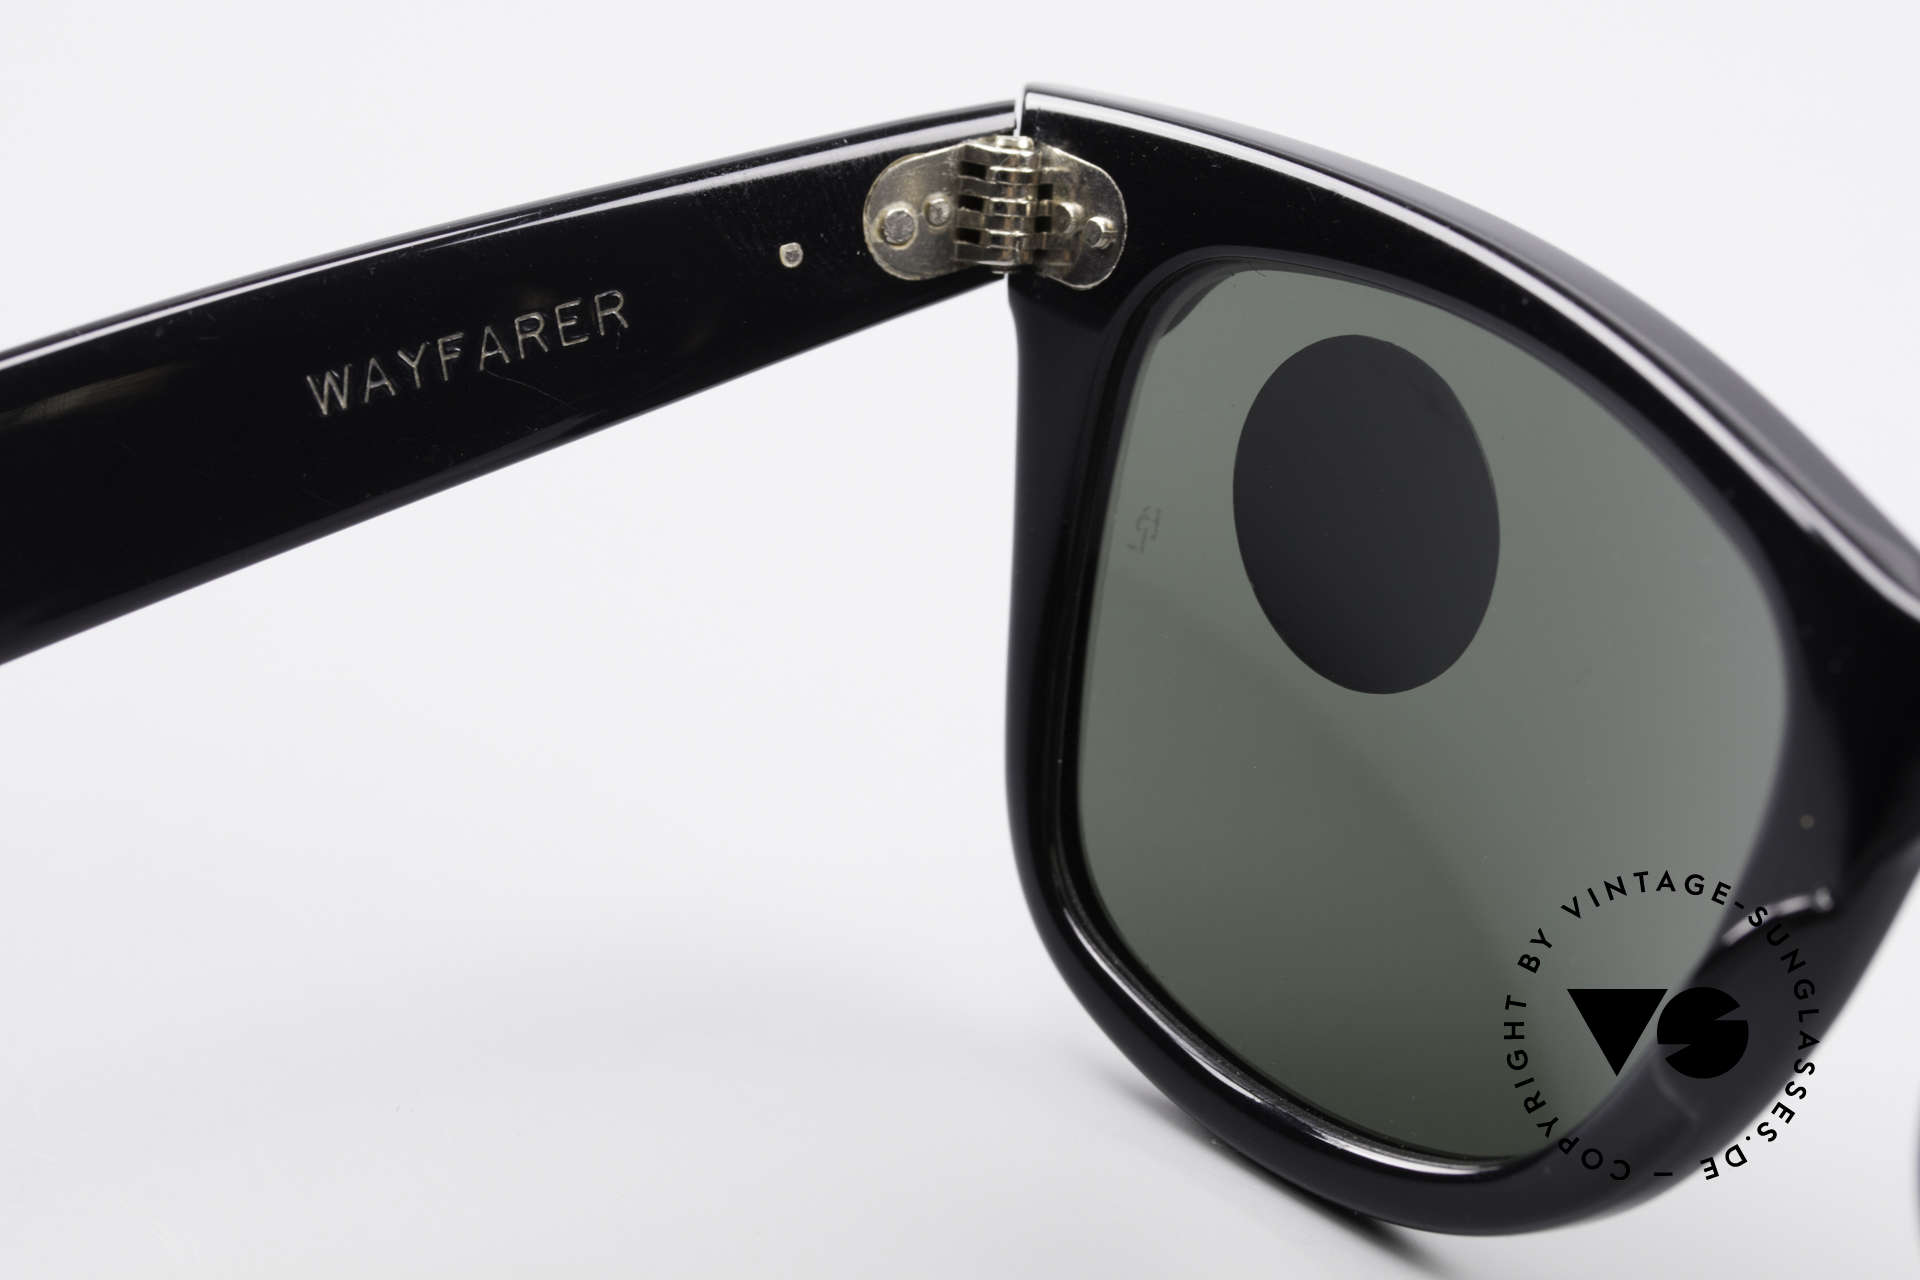 Ray Ban Wayfarer I Old 80's Sunglasses B&L USA, NO retro Italy-Wayfarer; an old 80's USA ORIGINAL, Made for Women